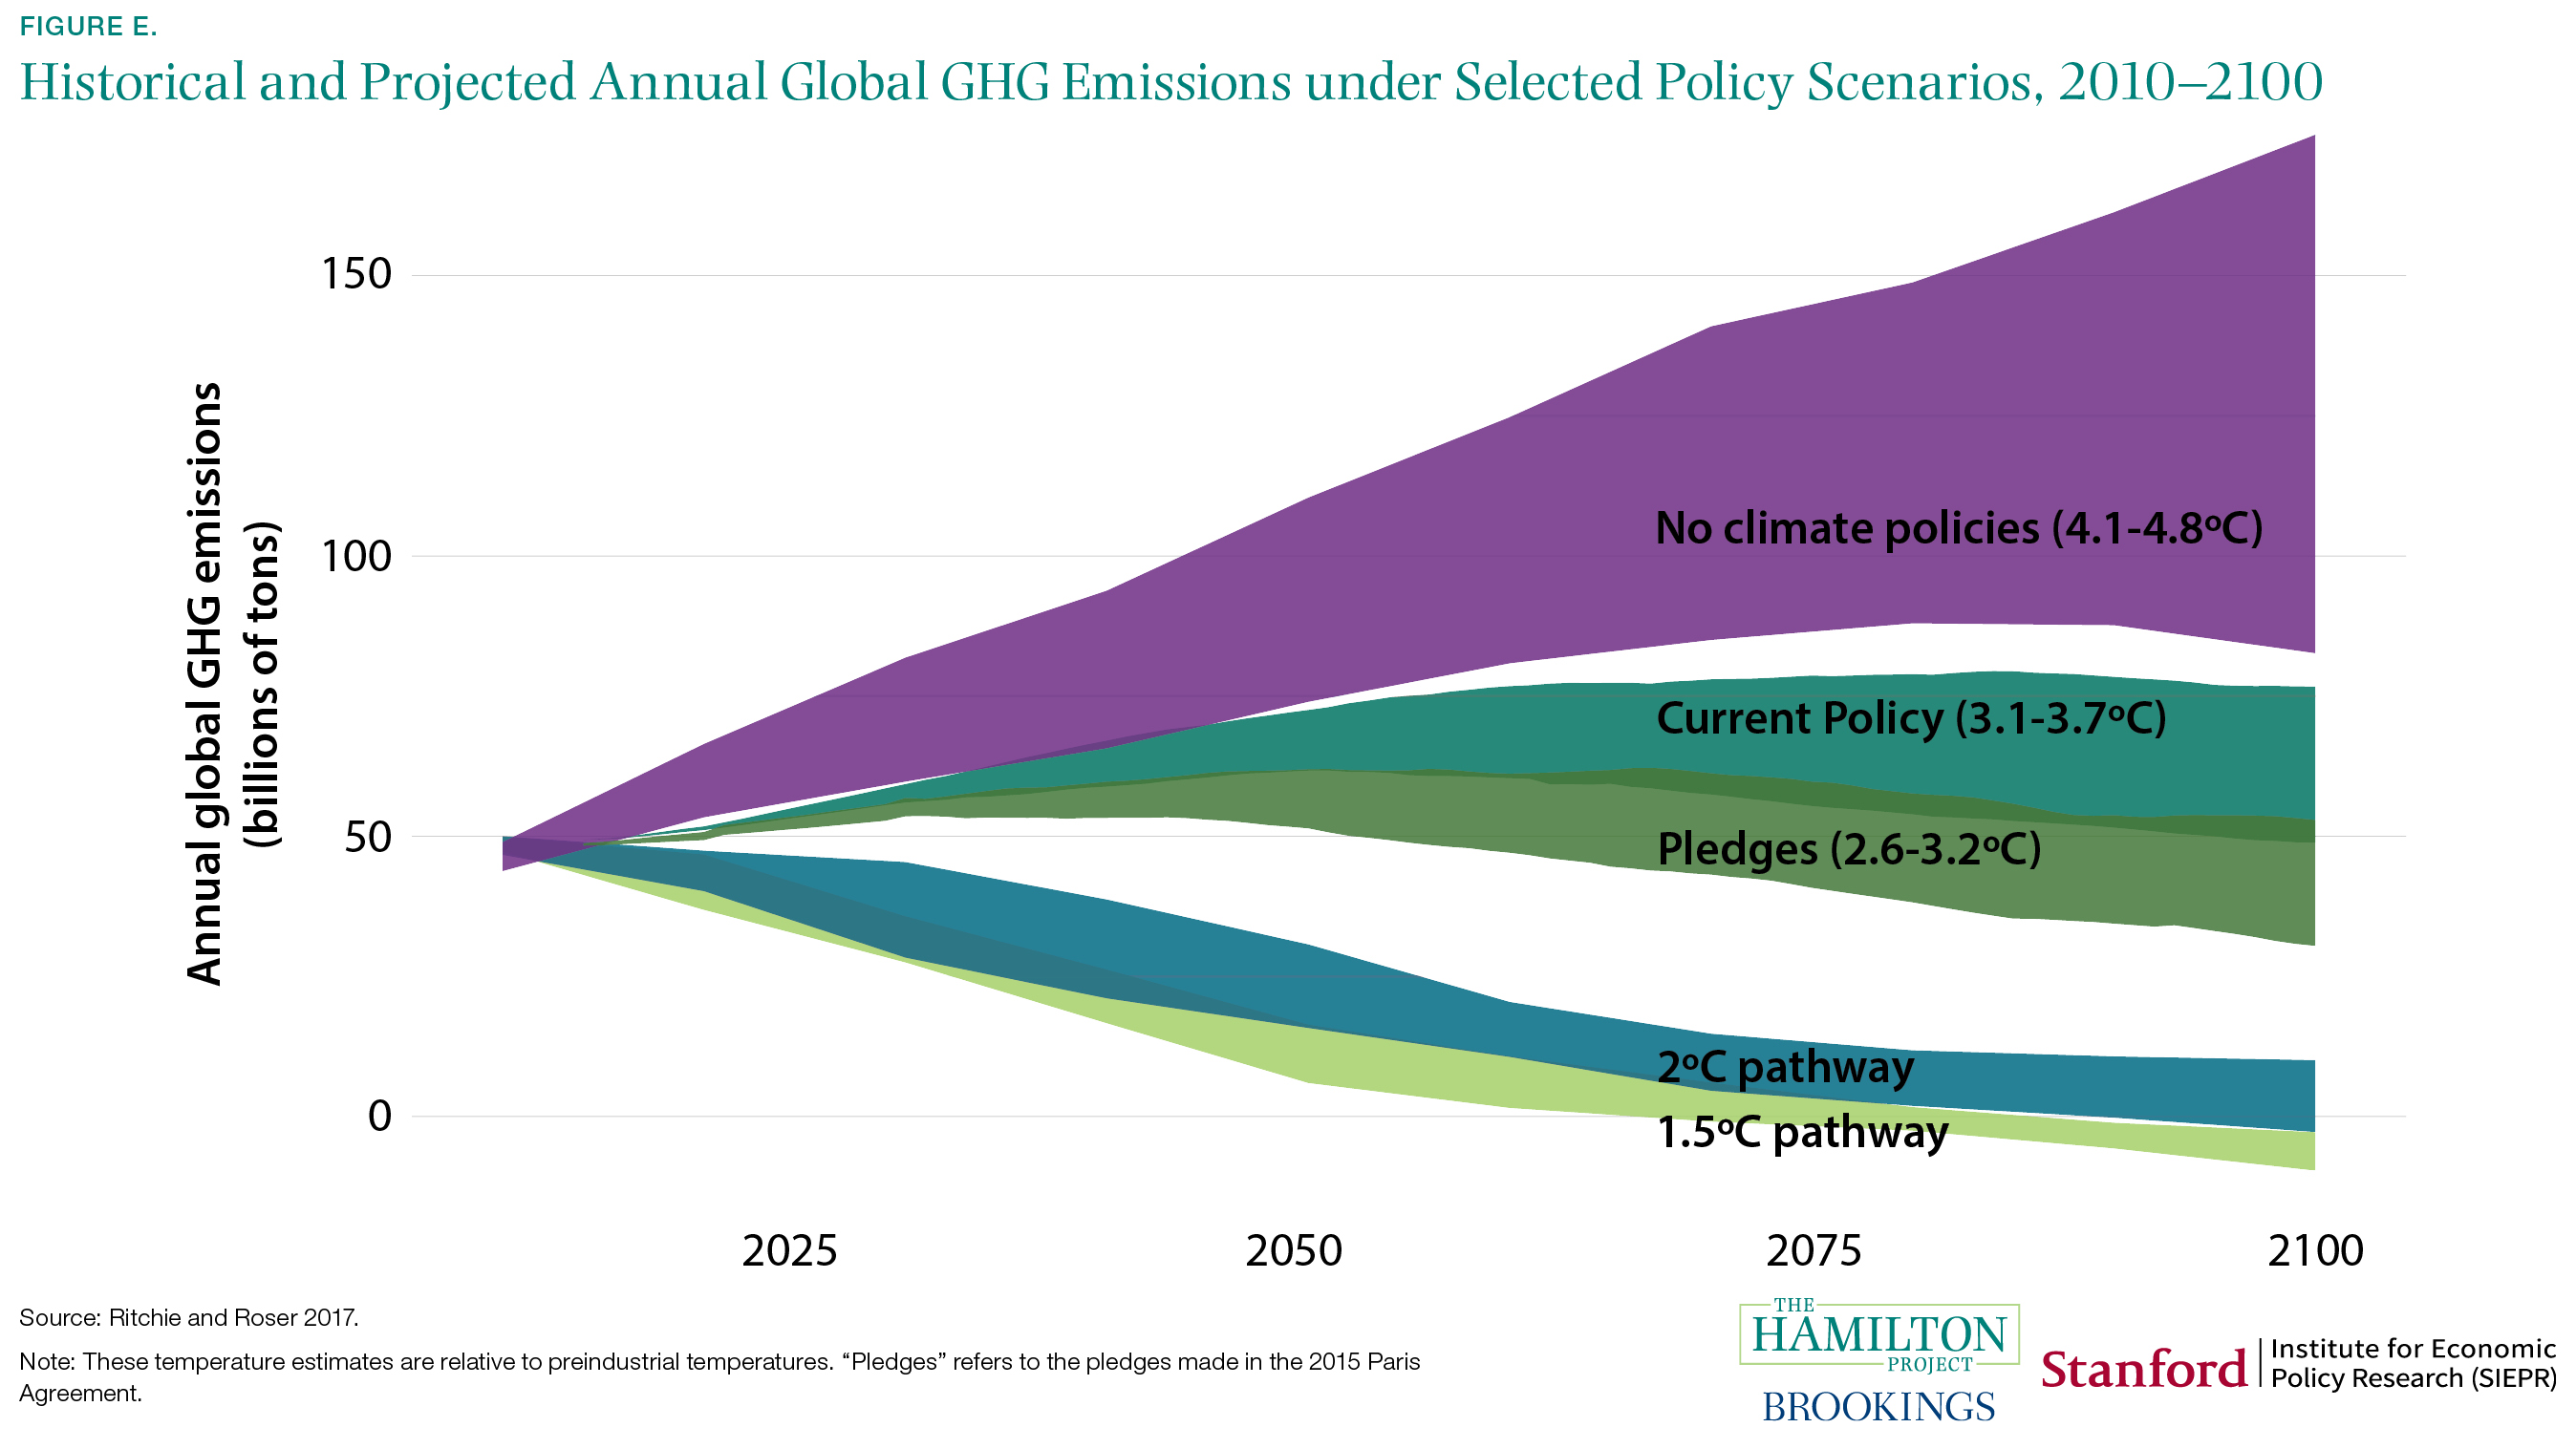 Historical and Projected Annual Global GHG Emissions under Selected Policy Scenarios, 2010-2100